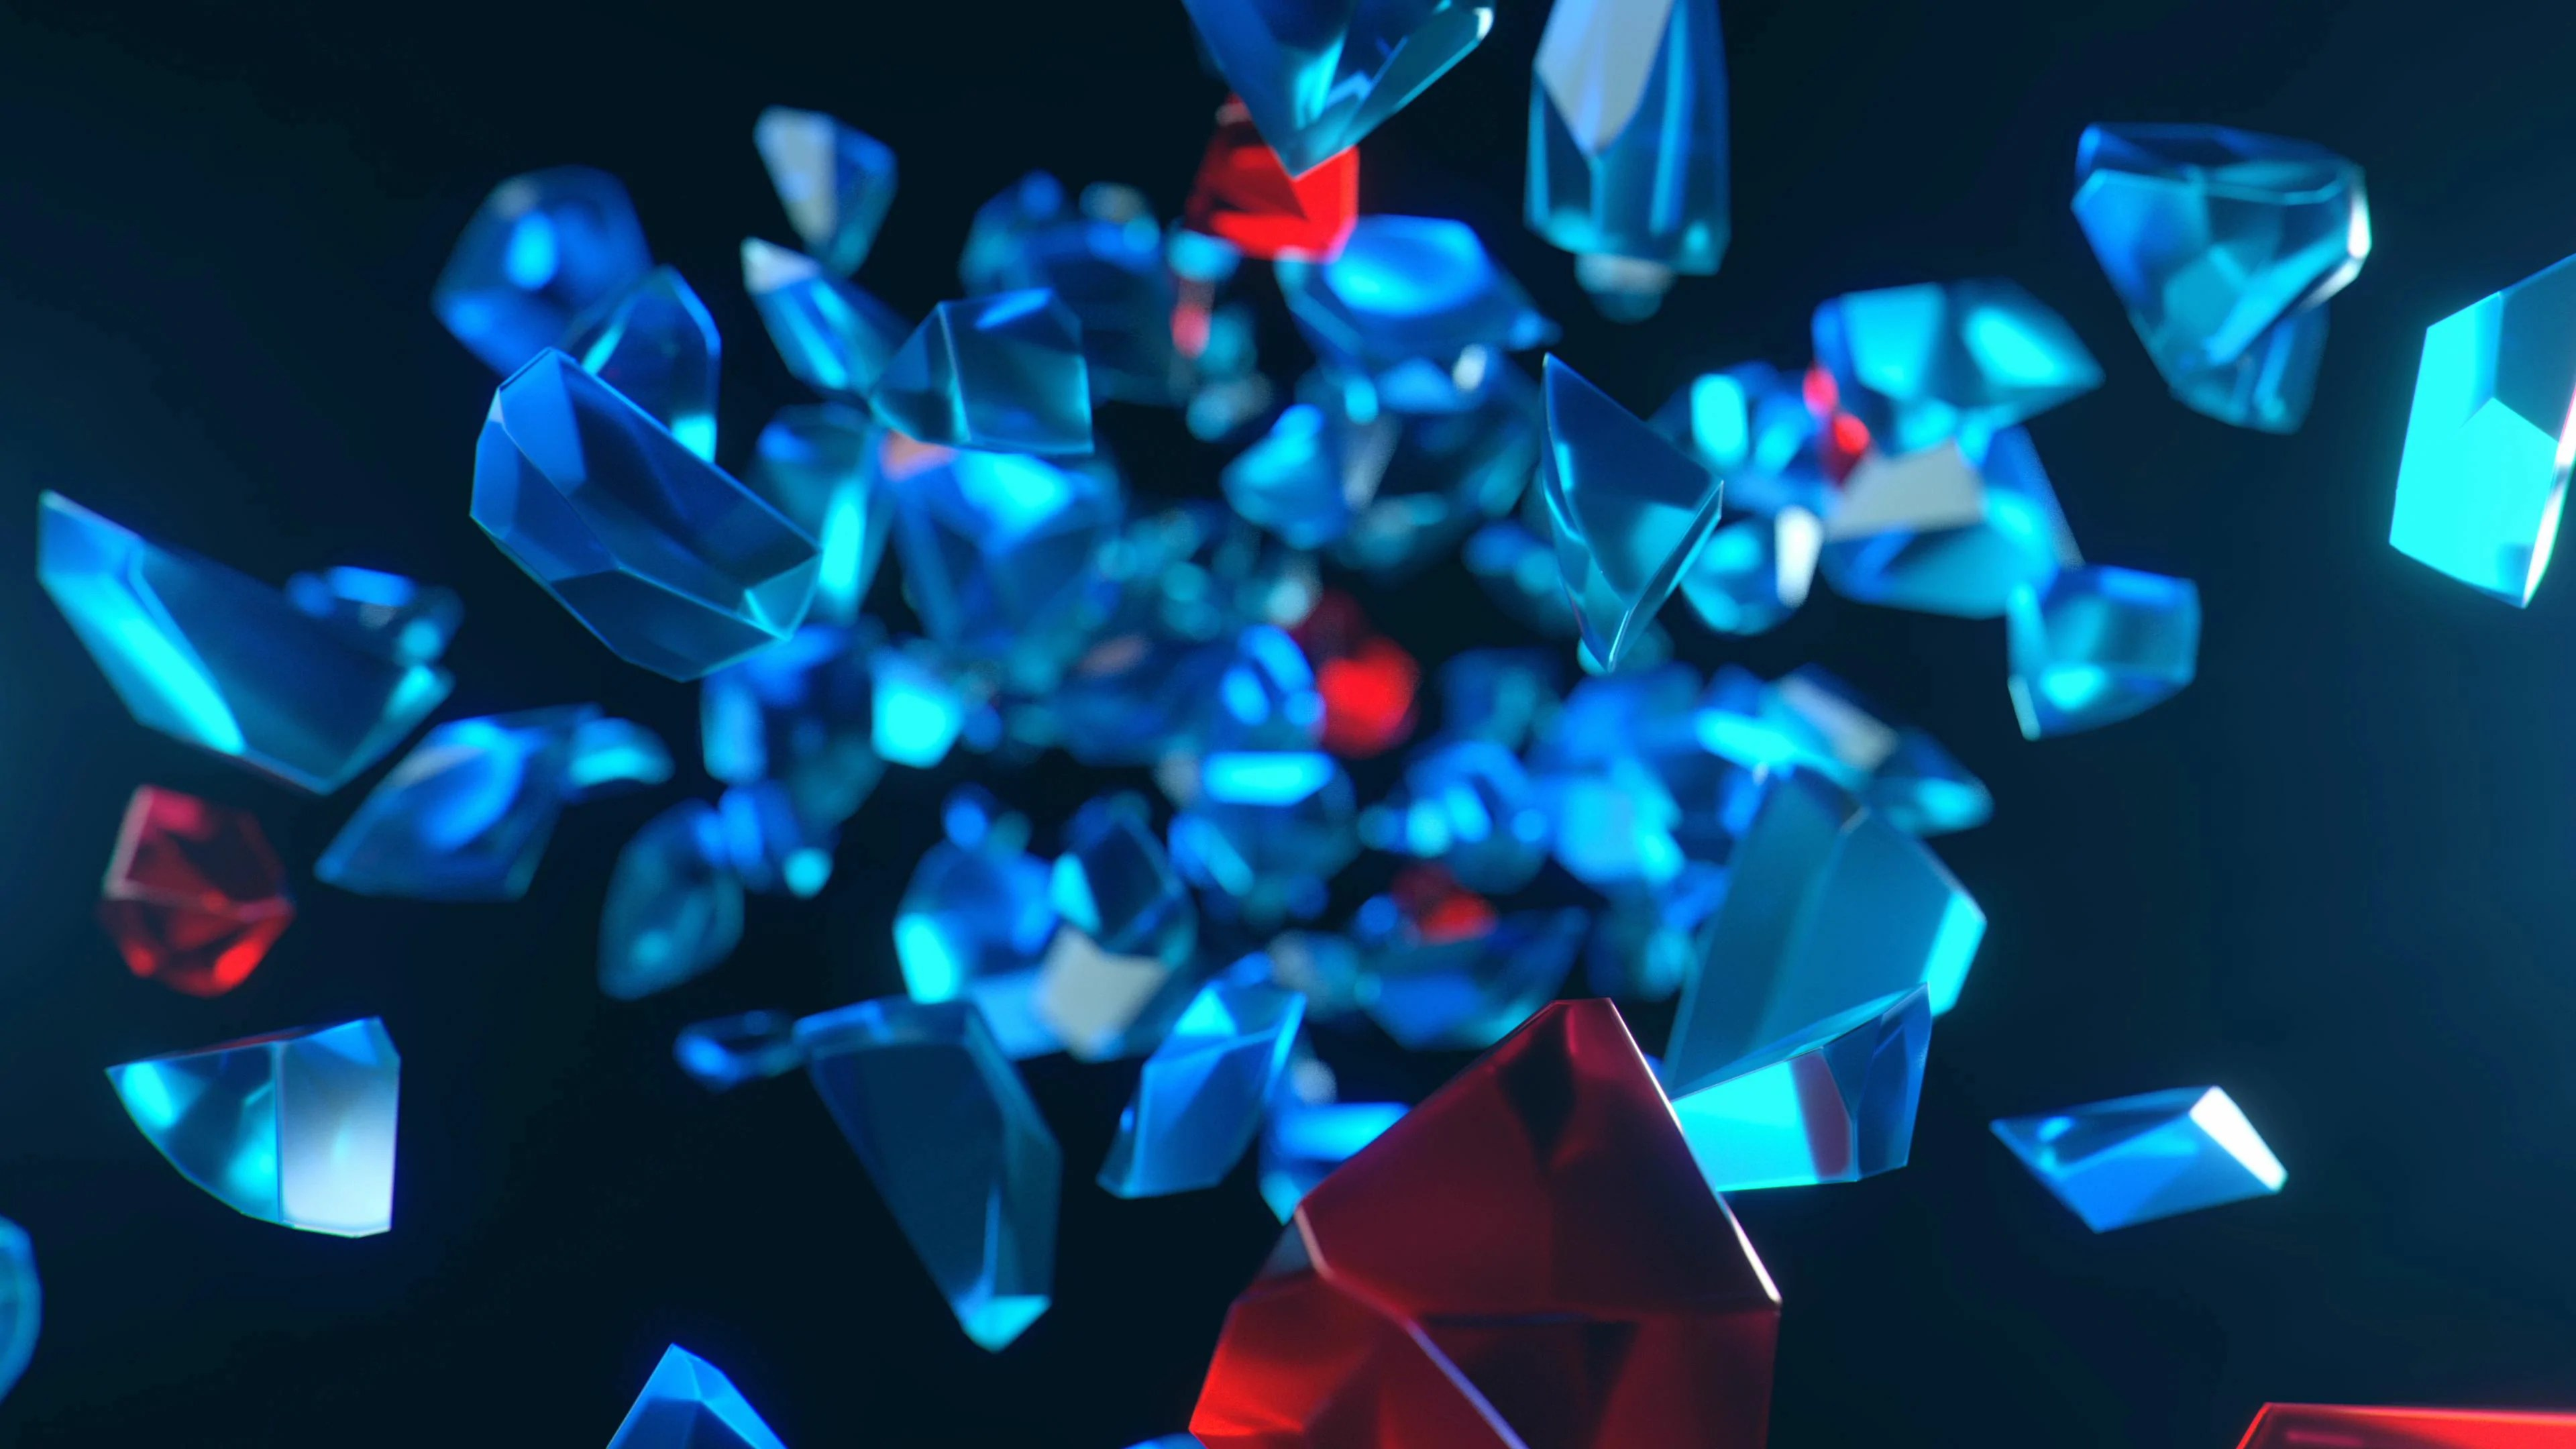 V J Vj Loop Diamond Glass Gem Shards 4k 1080p